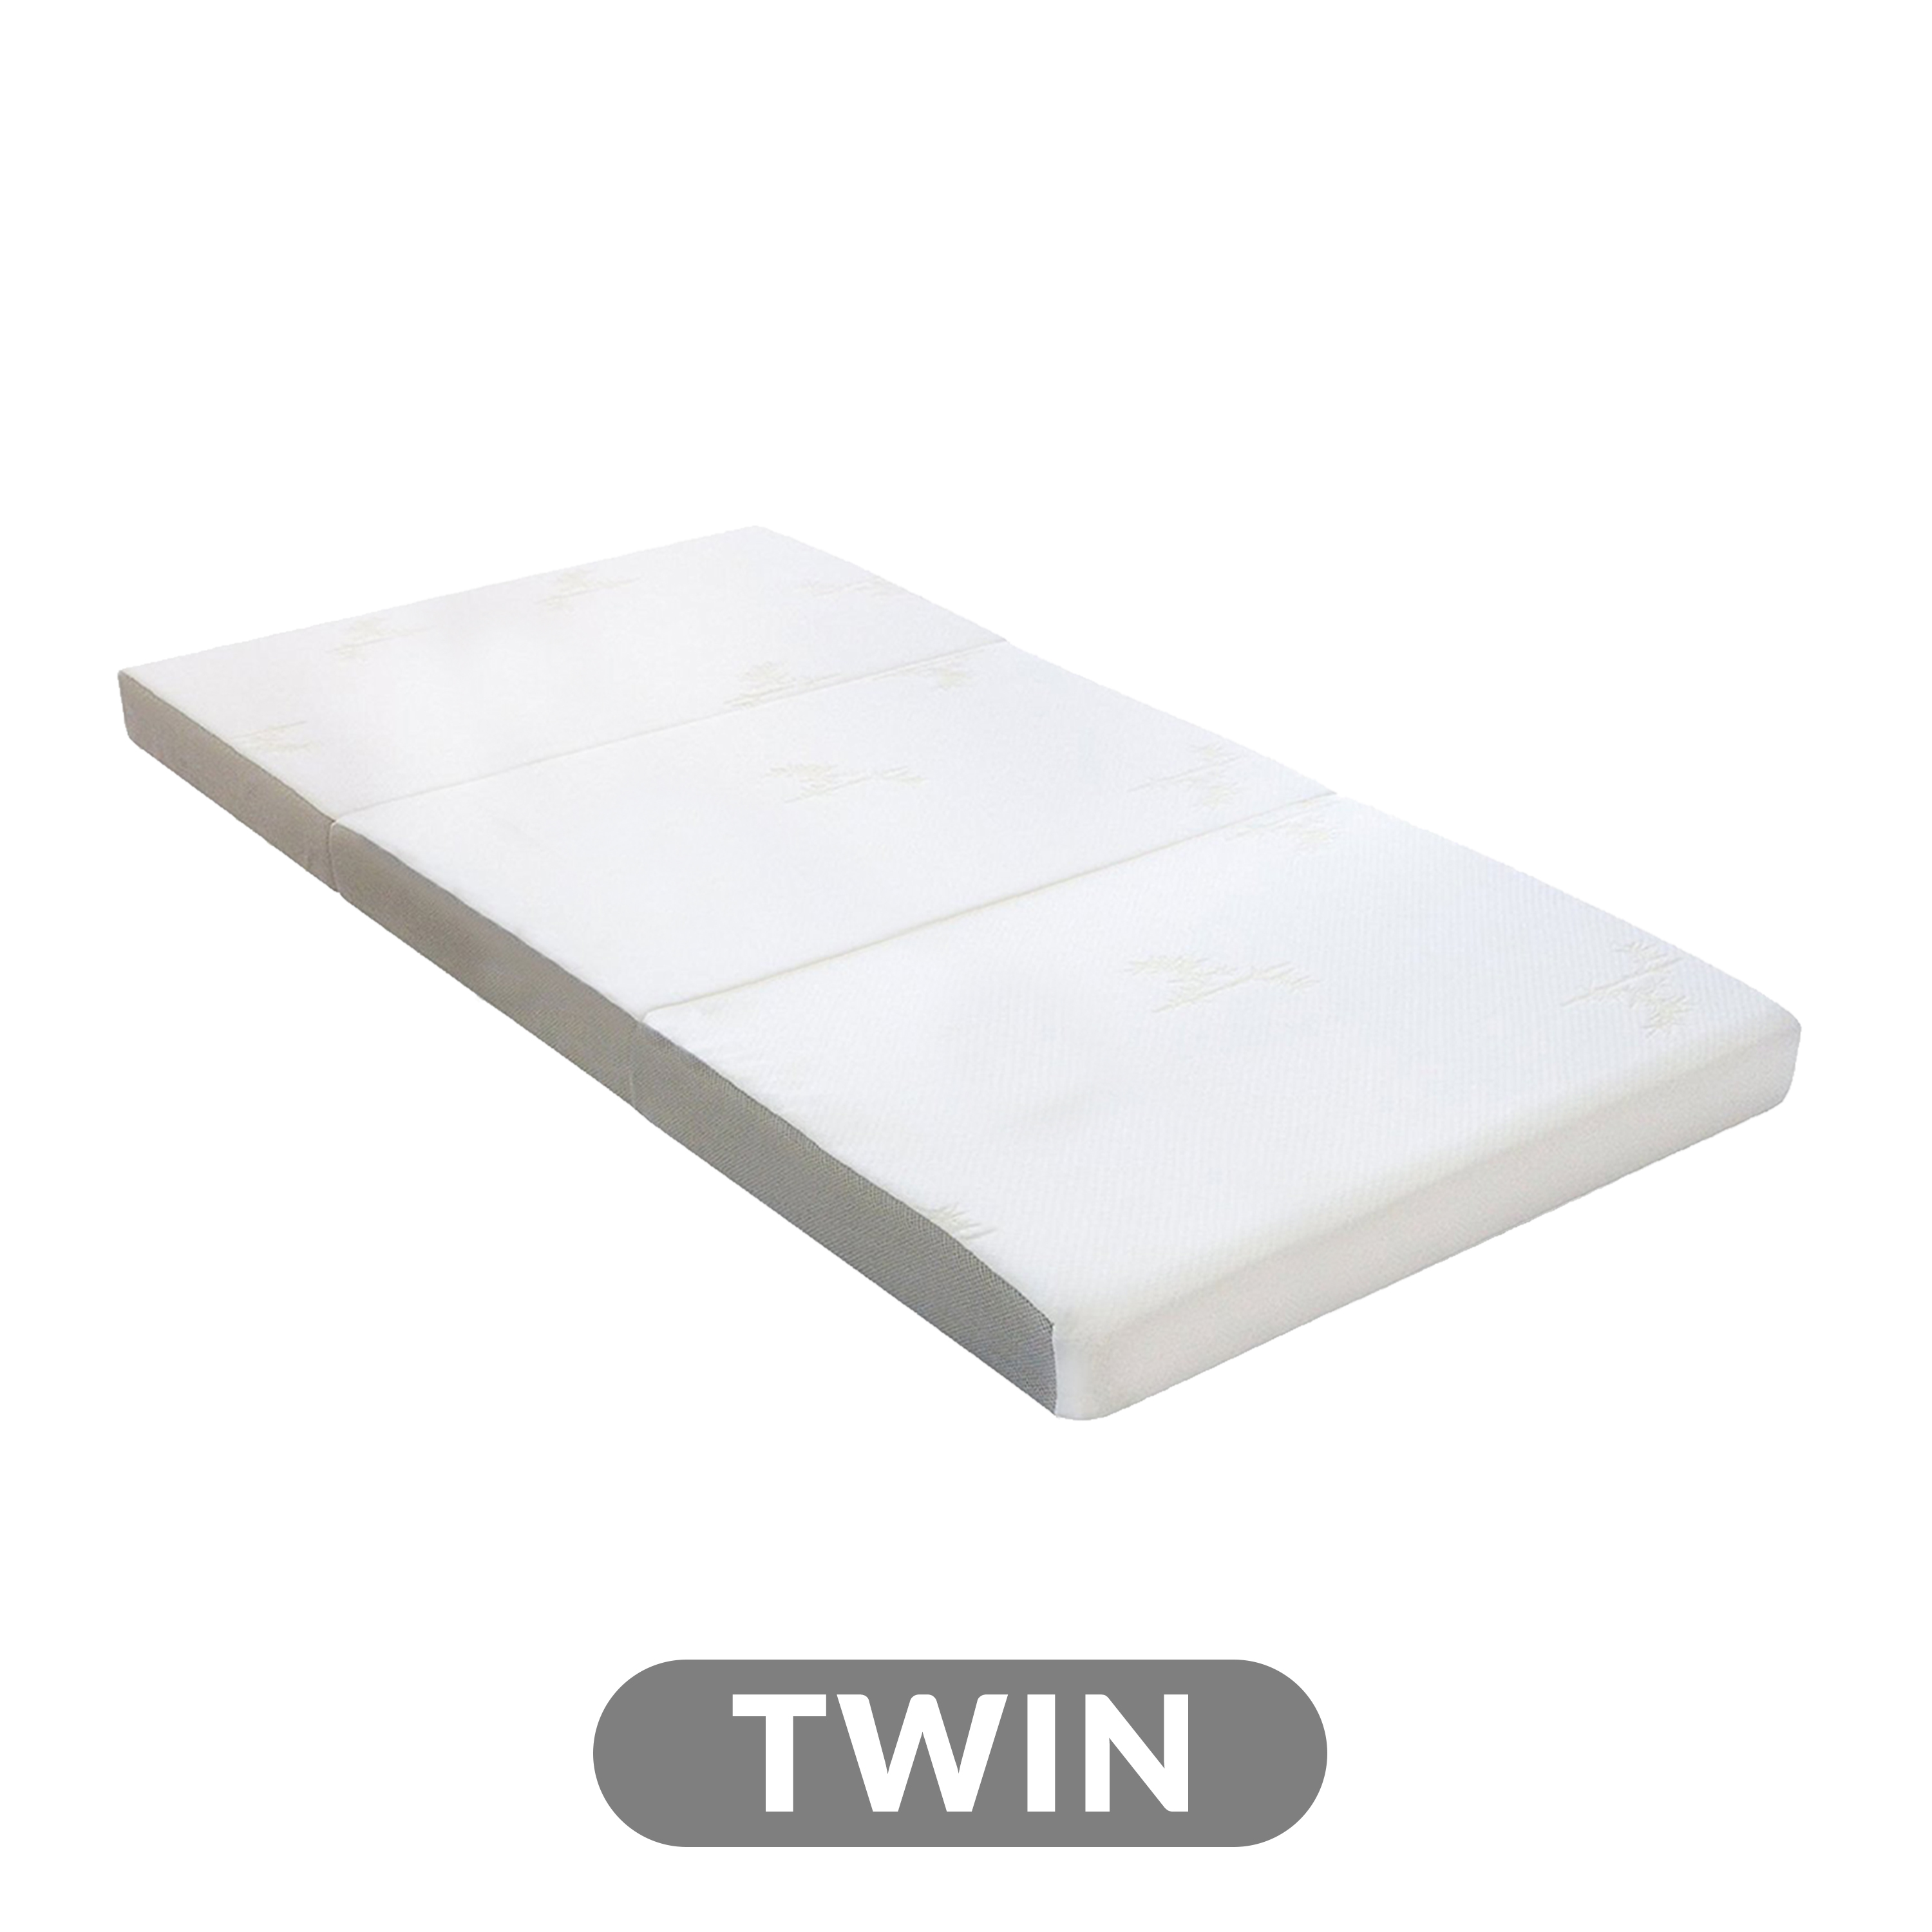 4 Tri Fold Foam Mattress With Cover Twin Milliard Bedding The Ultimate Sleep Experience